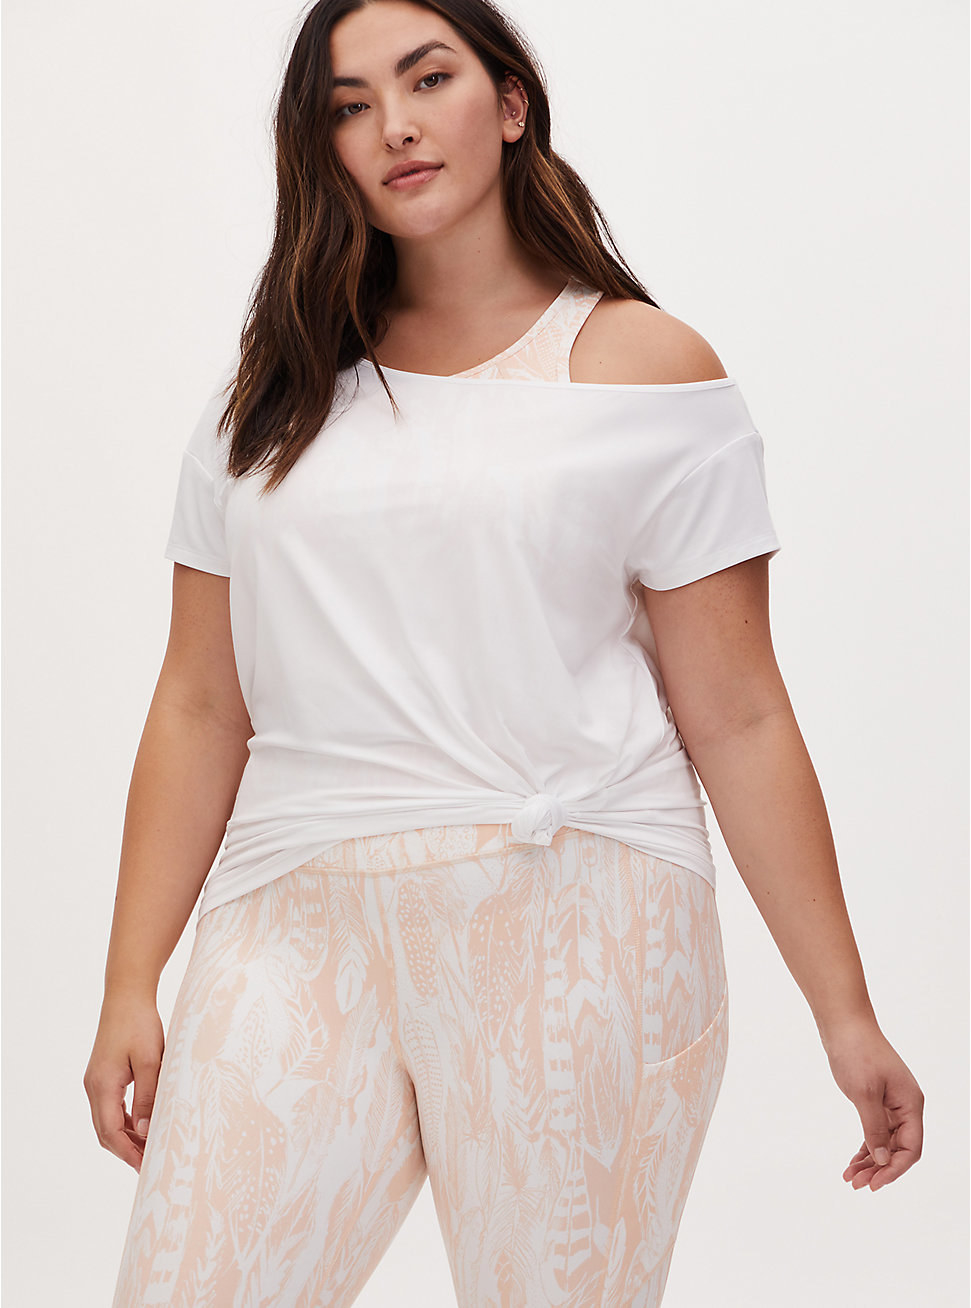 Model wears white off-shoulder short sleeve tee with white and light pink leggings